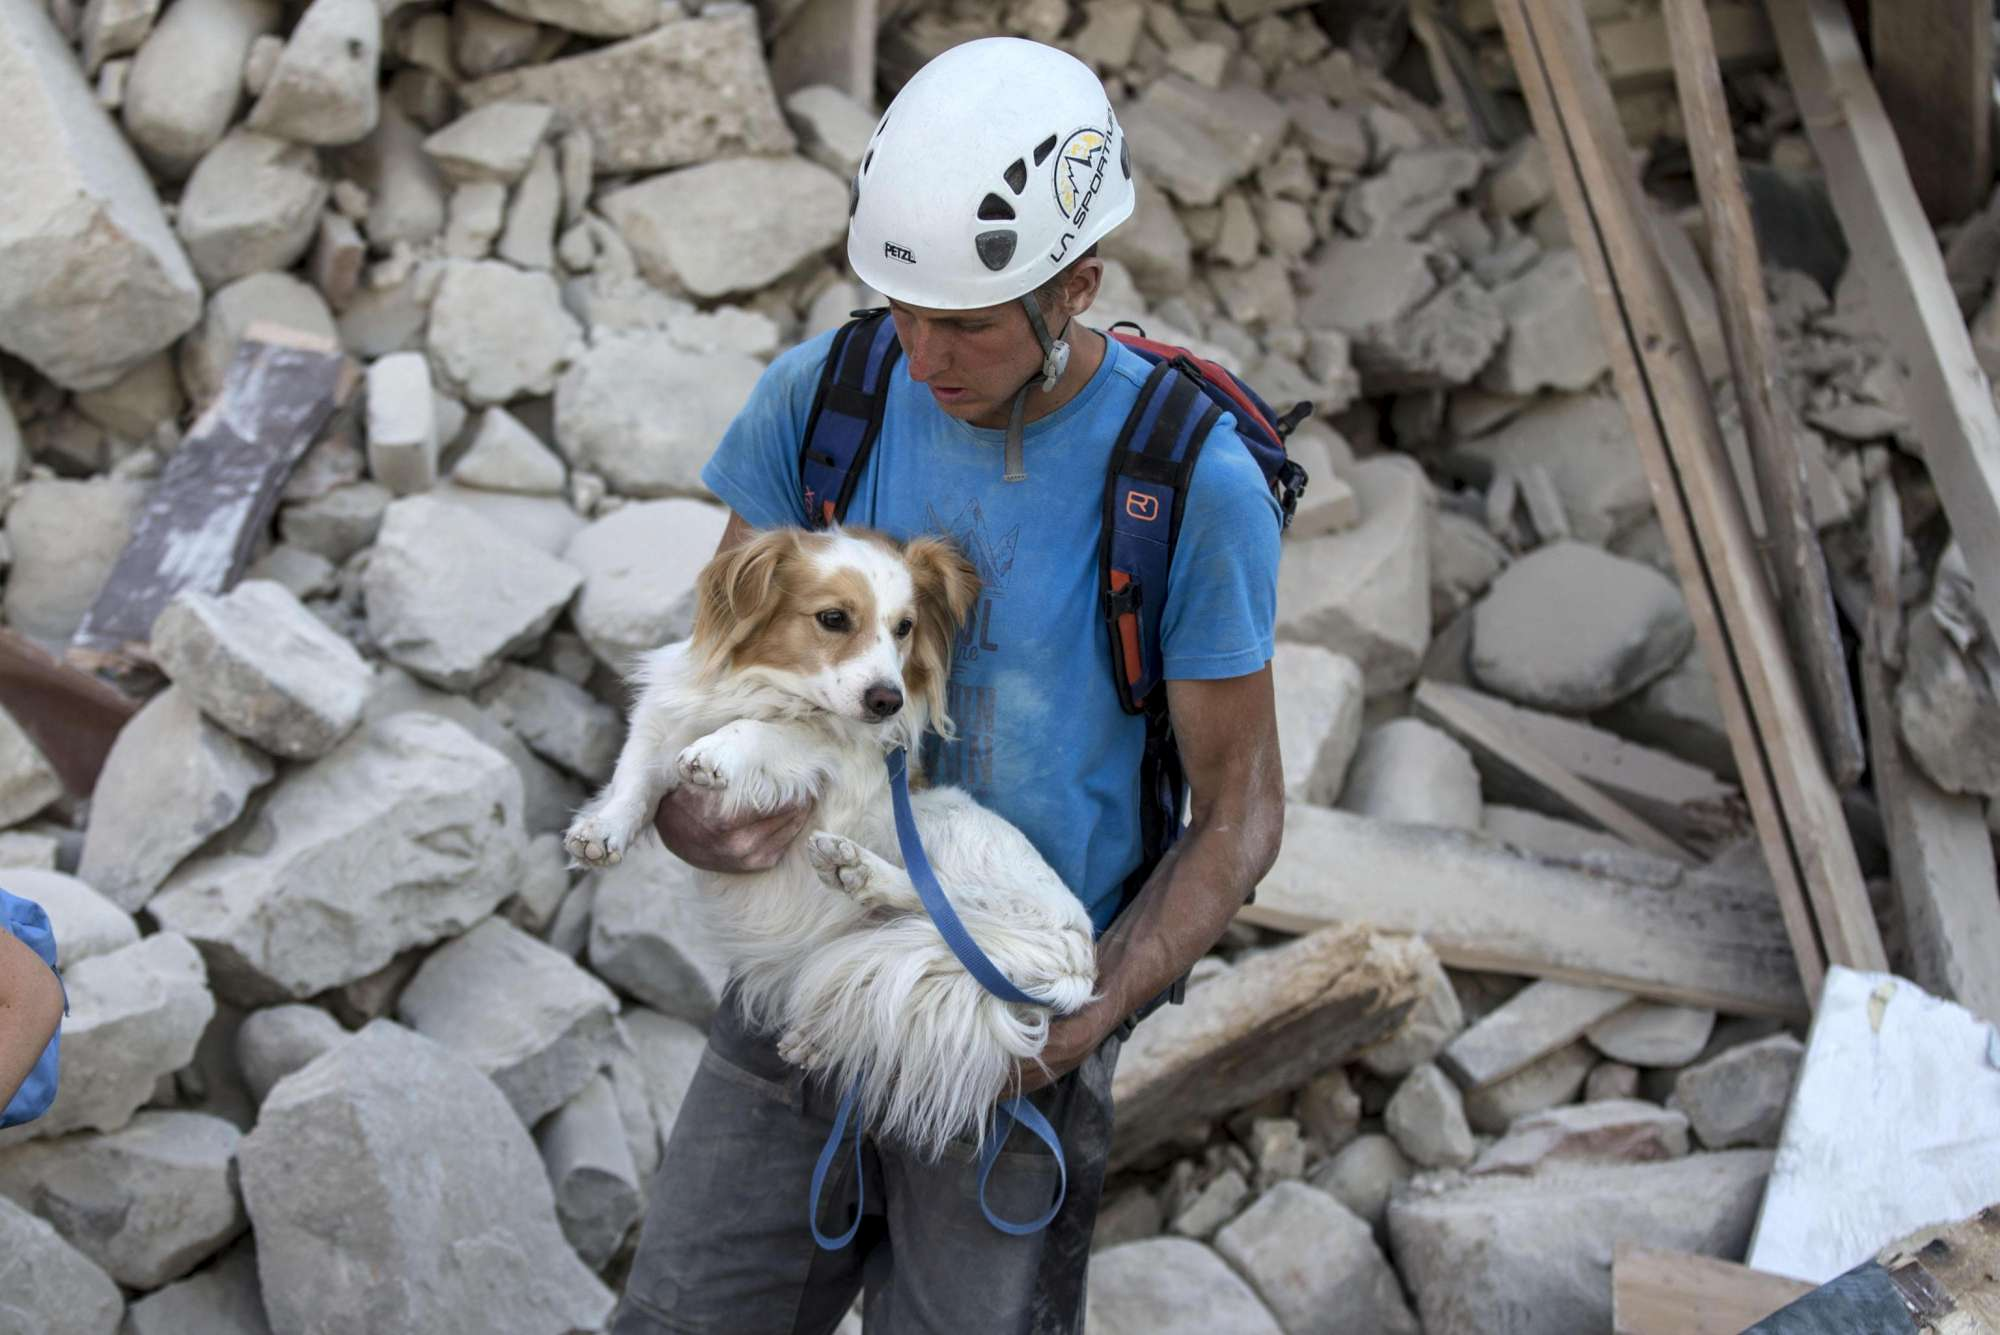 A volounteer with his dog works in Amatrice, central Italy, where a 6.1 earthquake struck just after 3:30 a.m., Italy, 24 August 2016. The quake was felt across a broad section of central Italy, including the capital Rome where people in homes in the historic center felt a long swaying followed by aftershocks. ANSA/ MASSIMO PERCOSSI